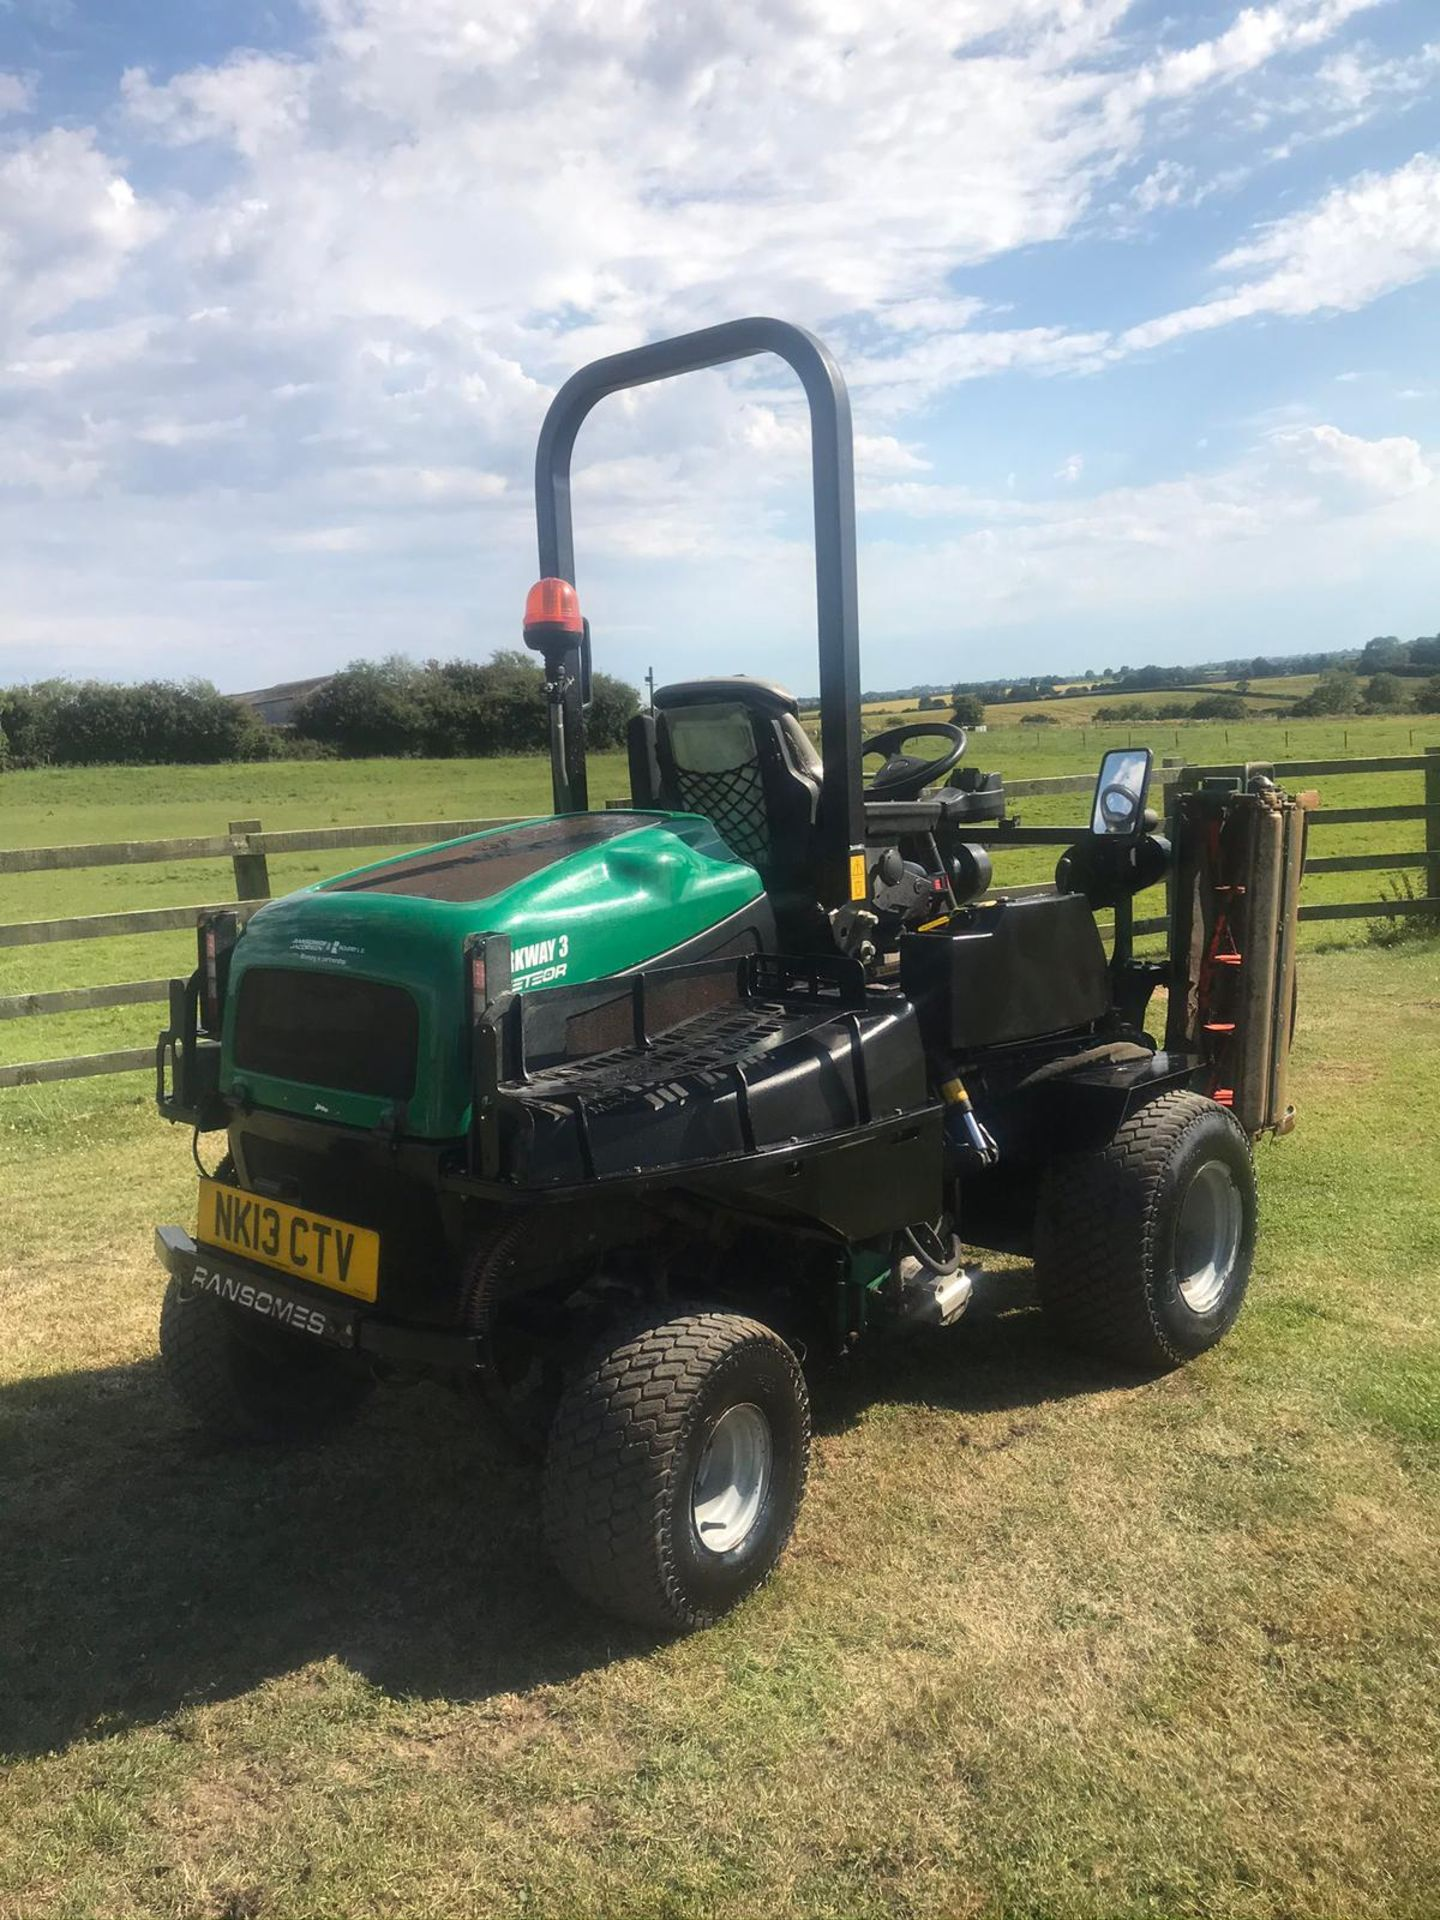 2013 RANSOMES PARKWAY 3, RUNS, DRIVES AND CUTS, ROAD LEGAL *PLUS VAT* - Image 3 of 4